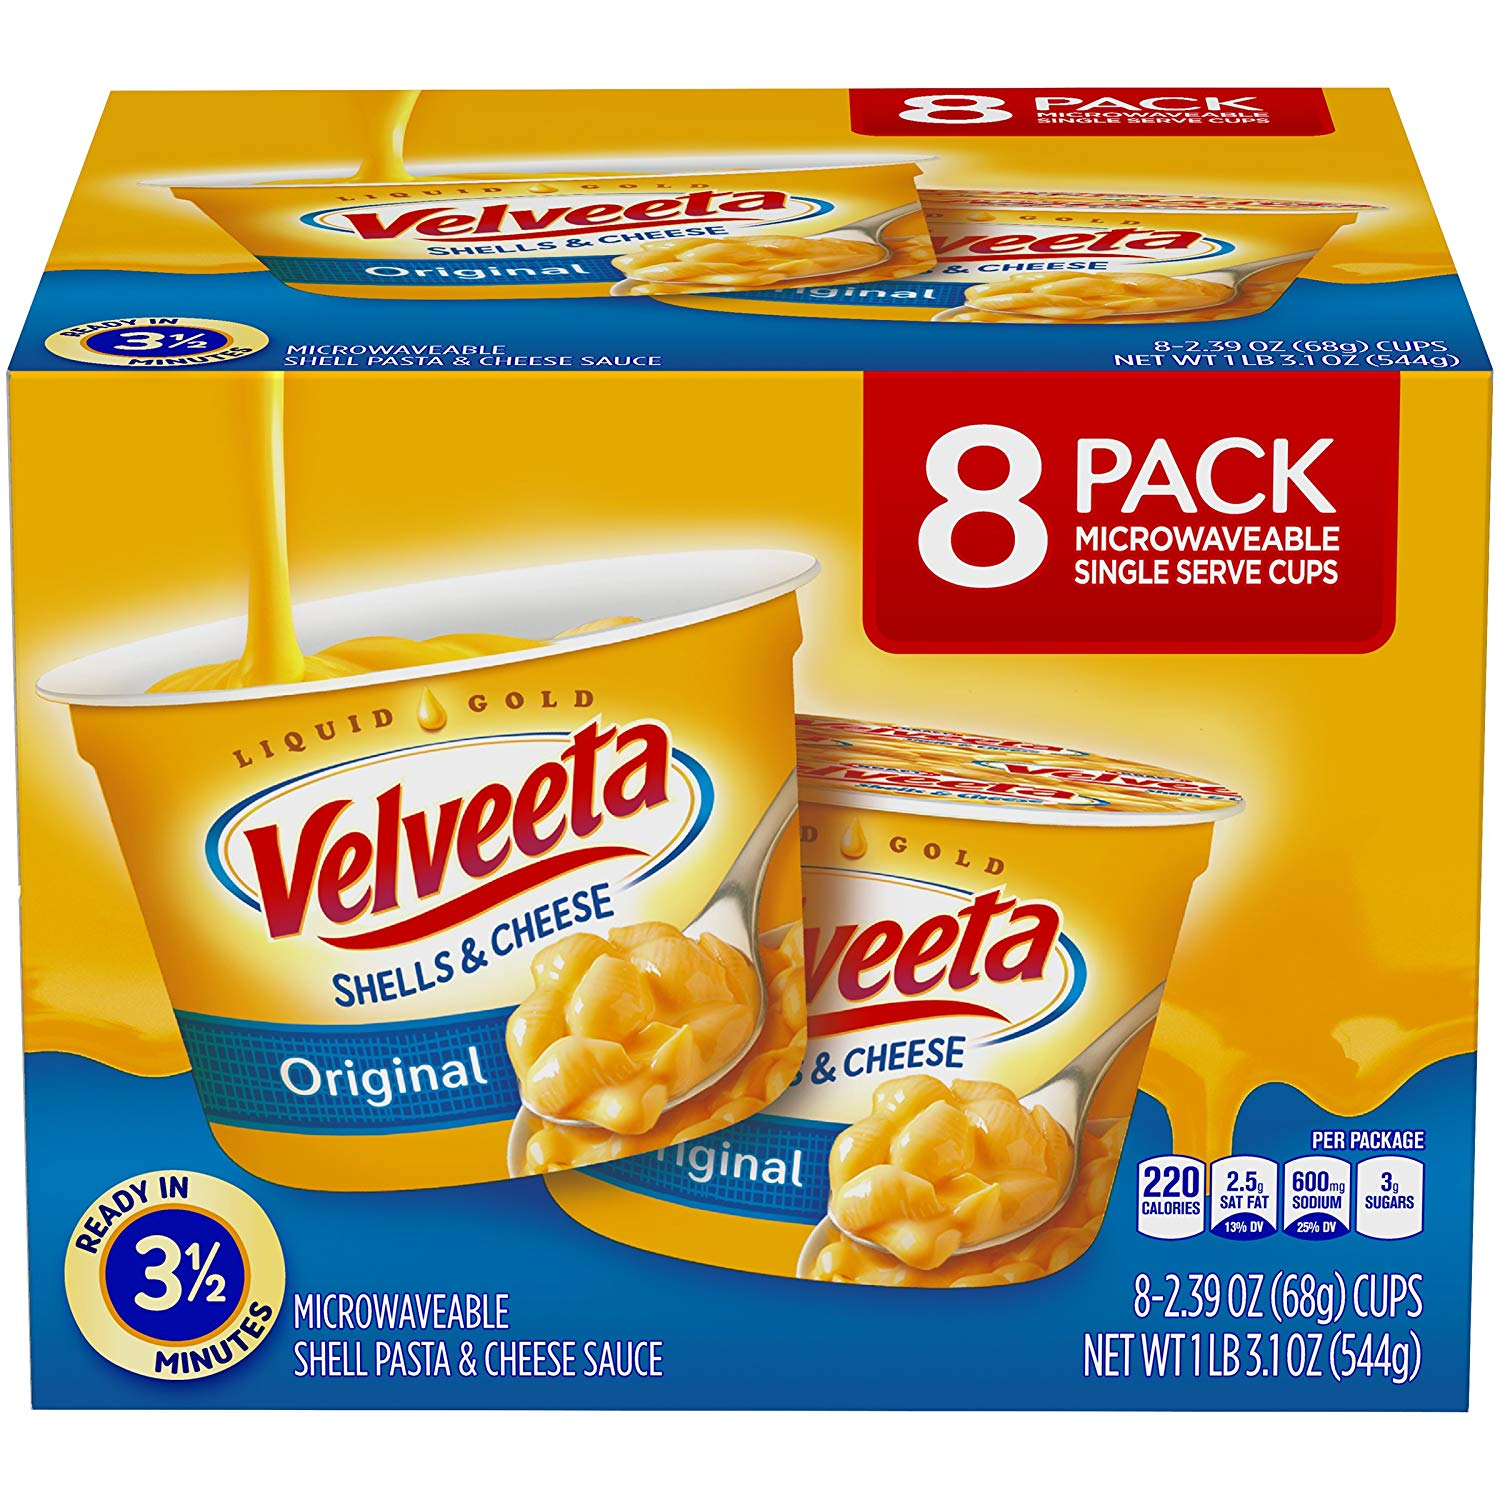 Velveeta Original Shells & Cheese